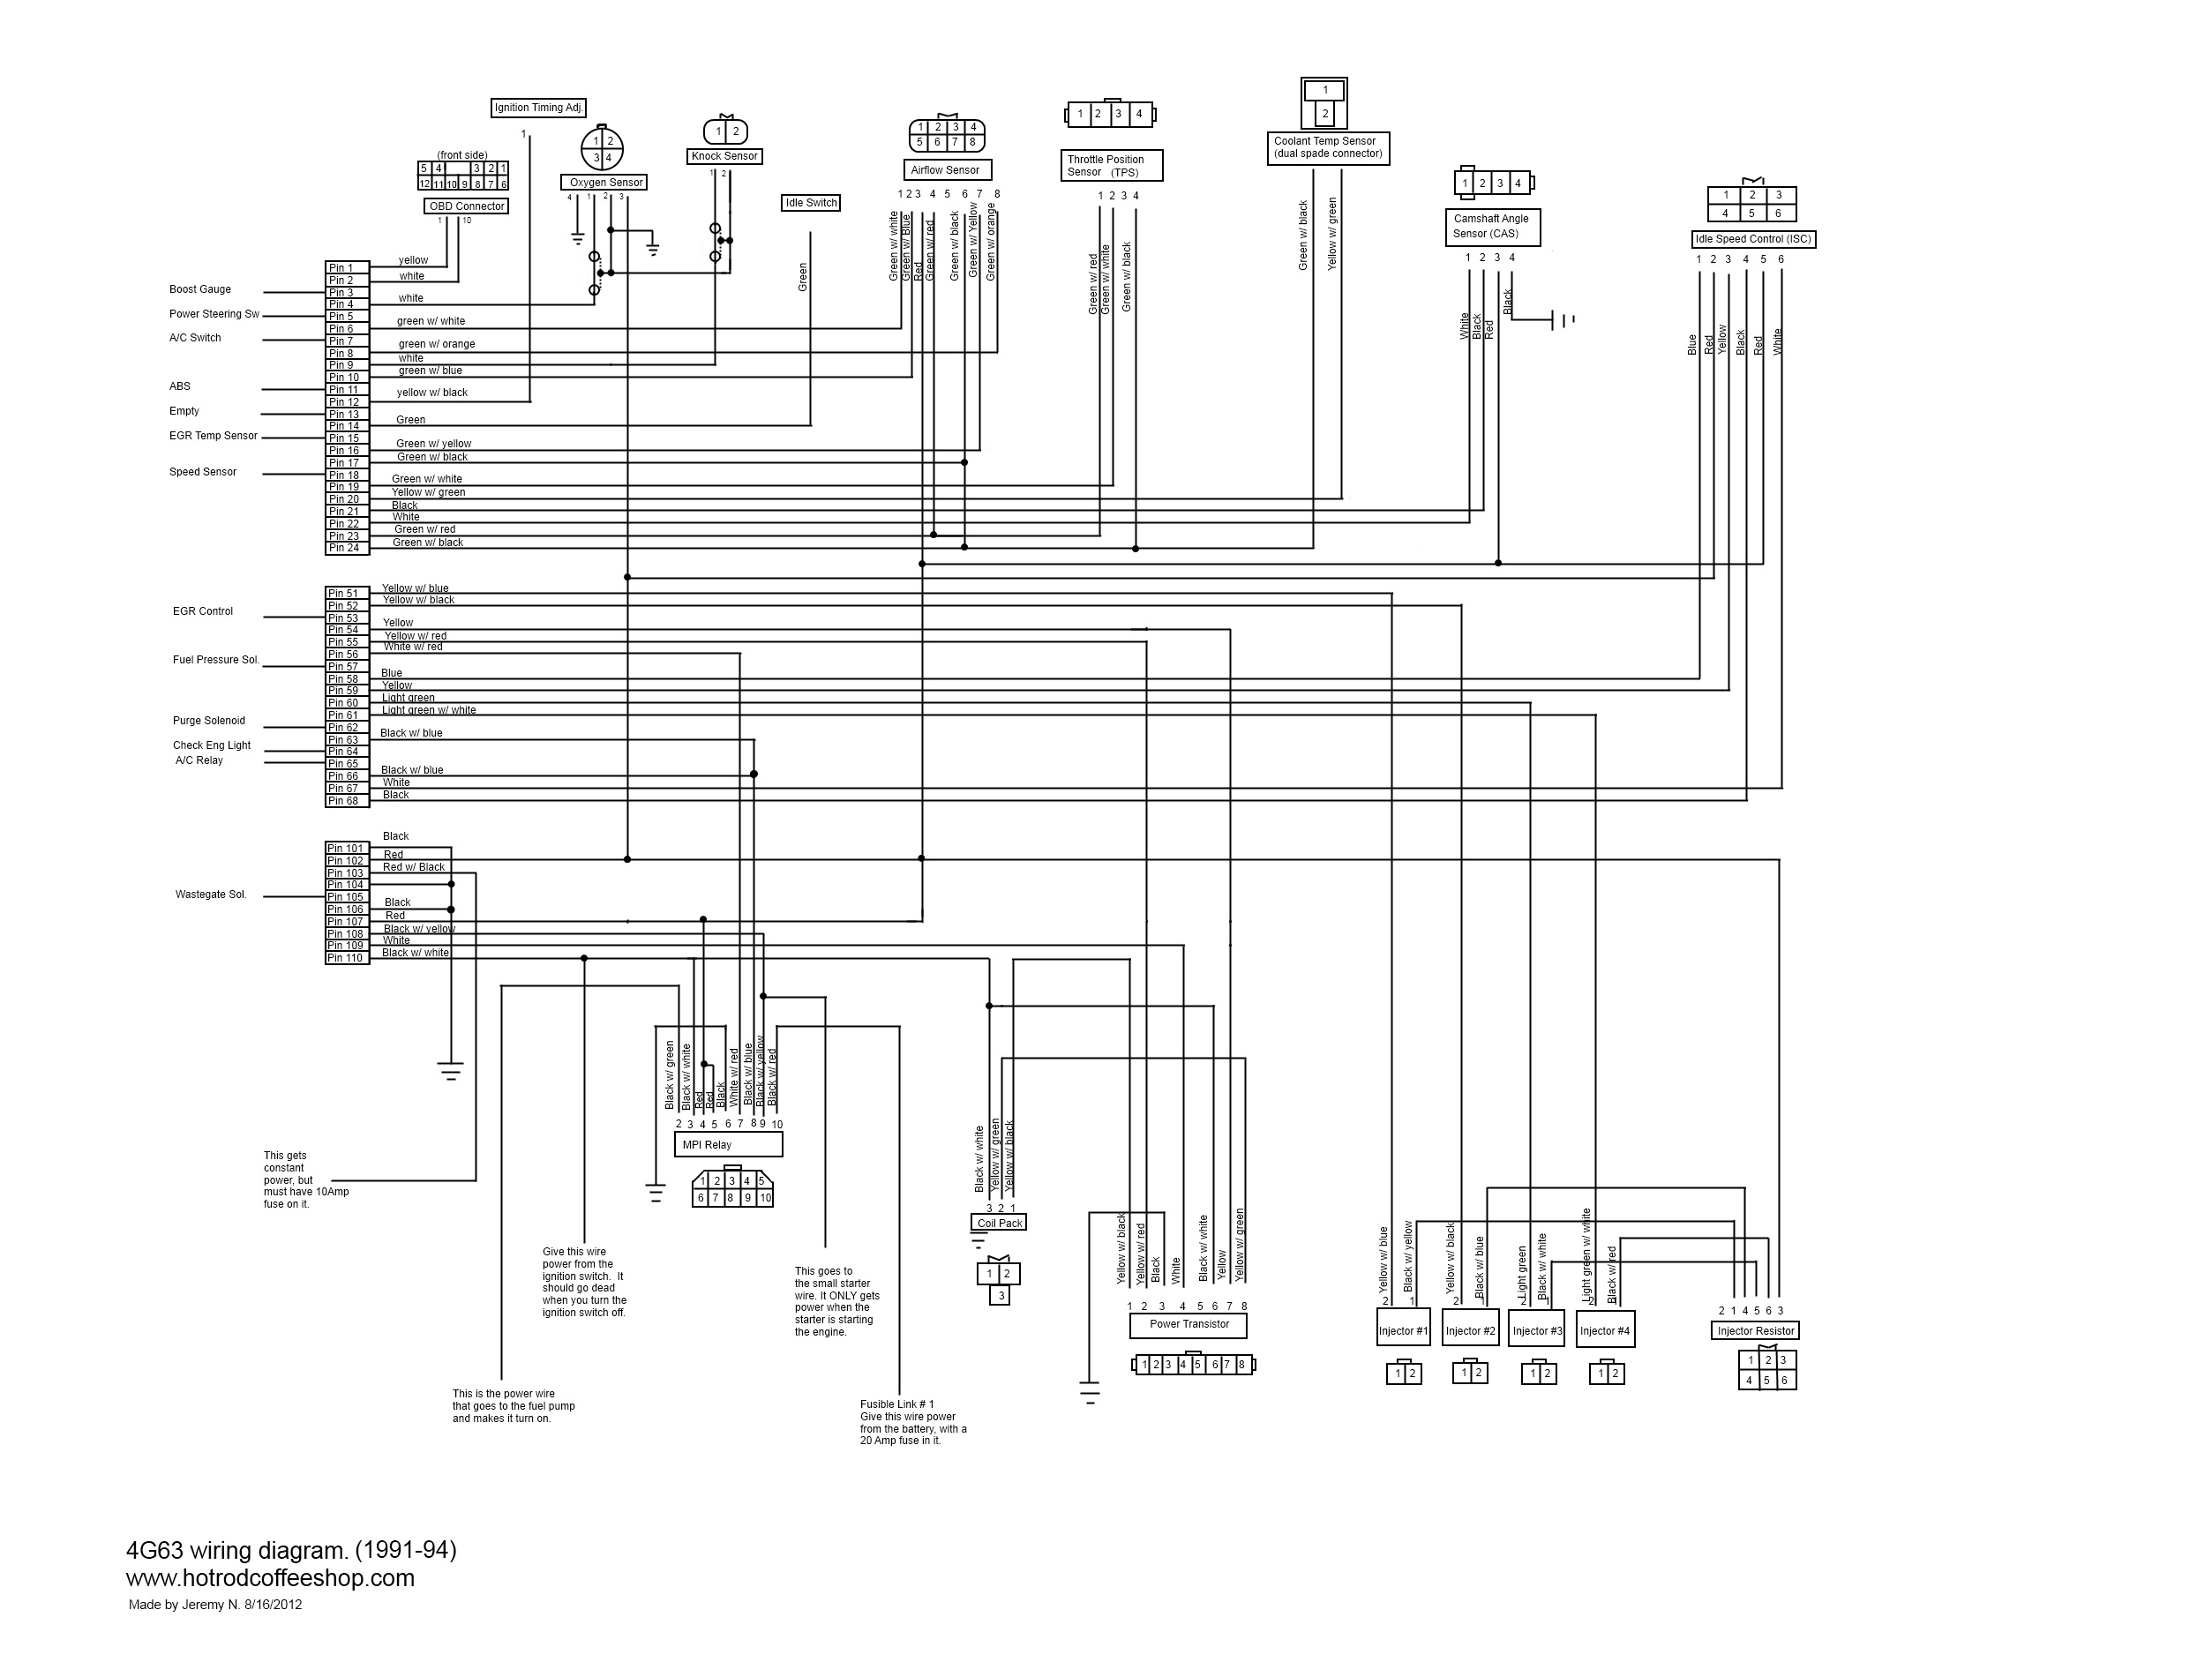 4G63 Wiring Diagrams / Schematics For Engine Swaps ...